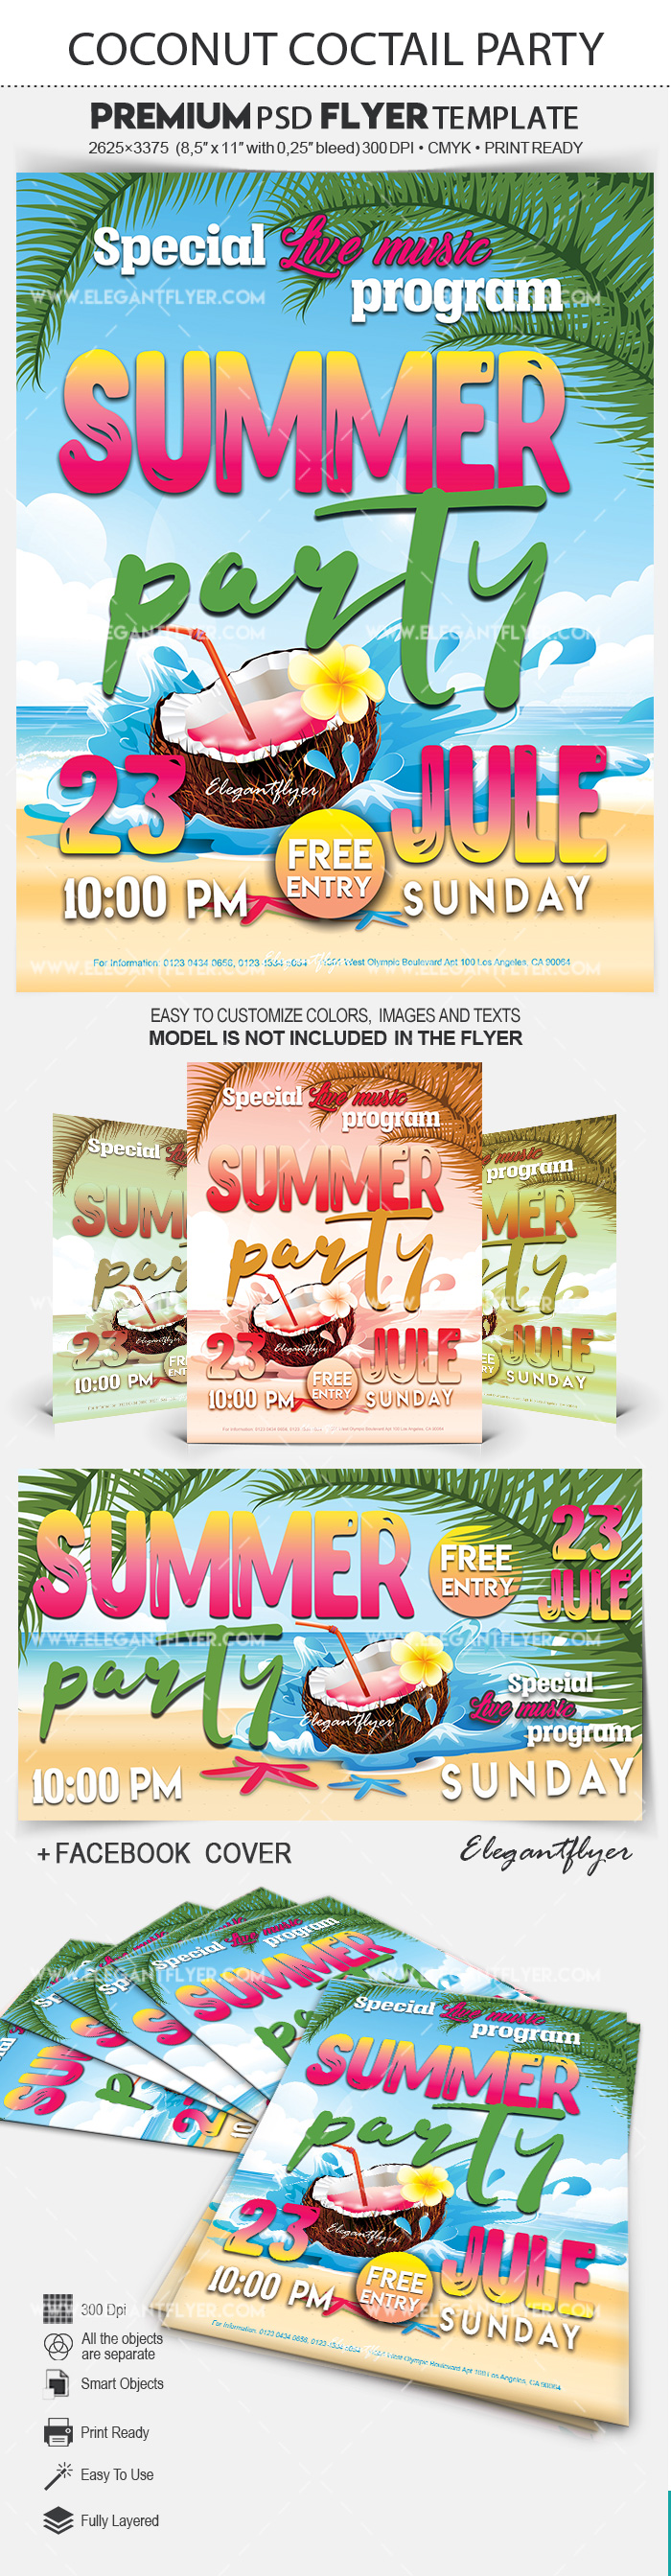 Coconut Coctail Party – Premium Flyer PSD Template